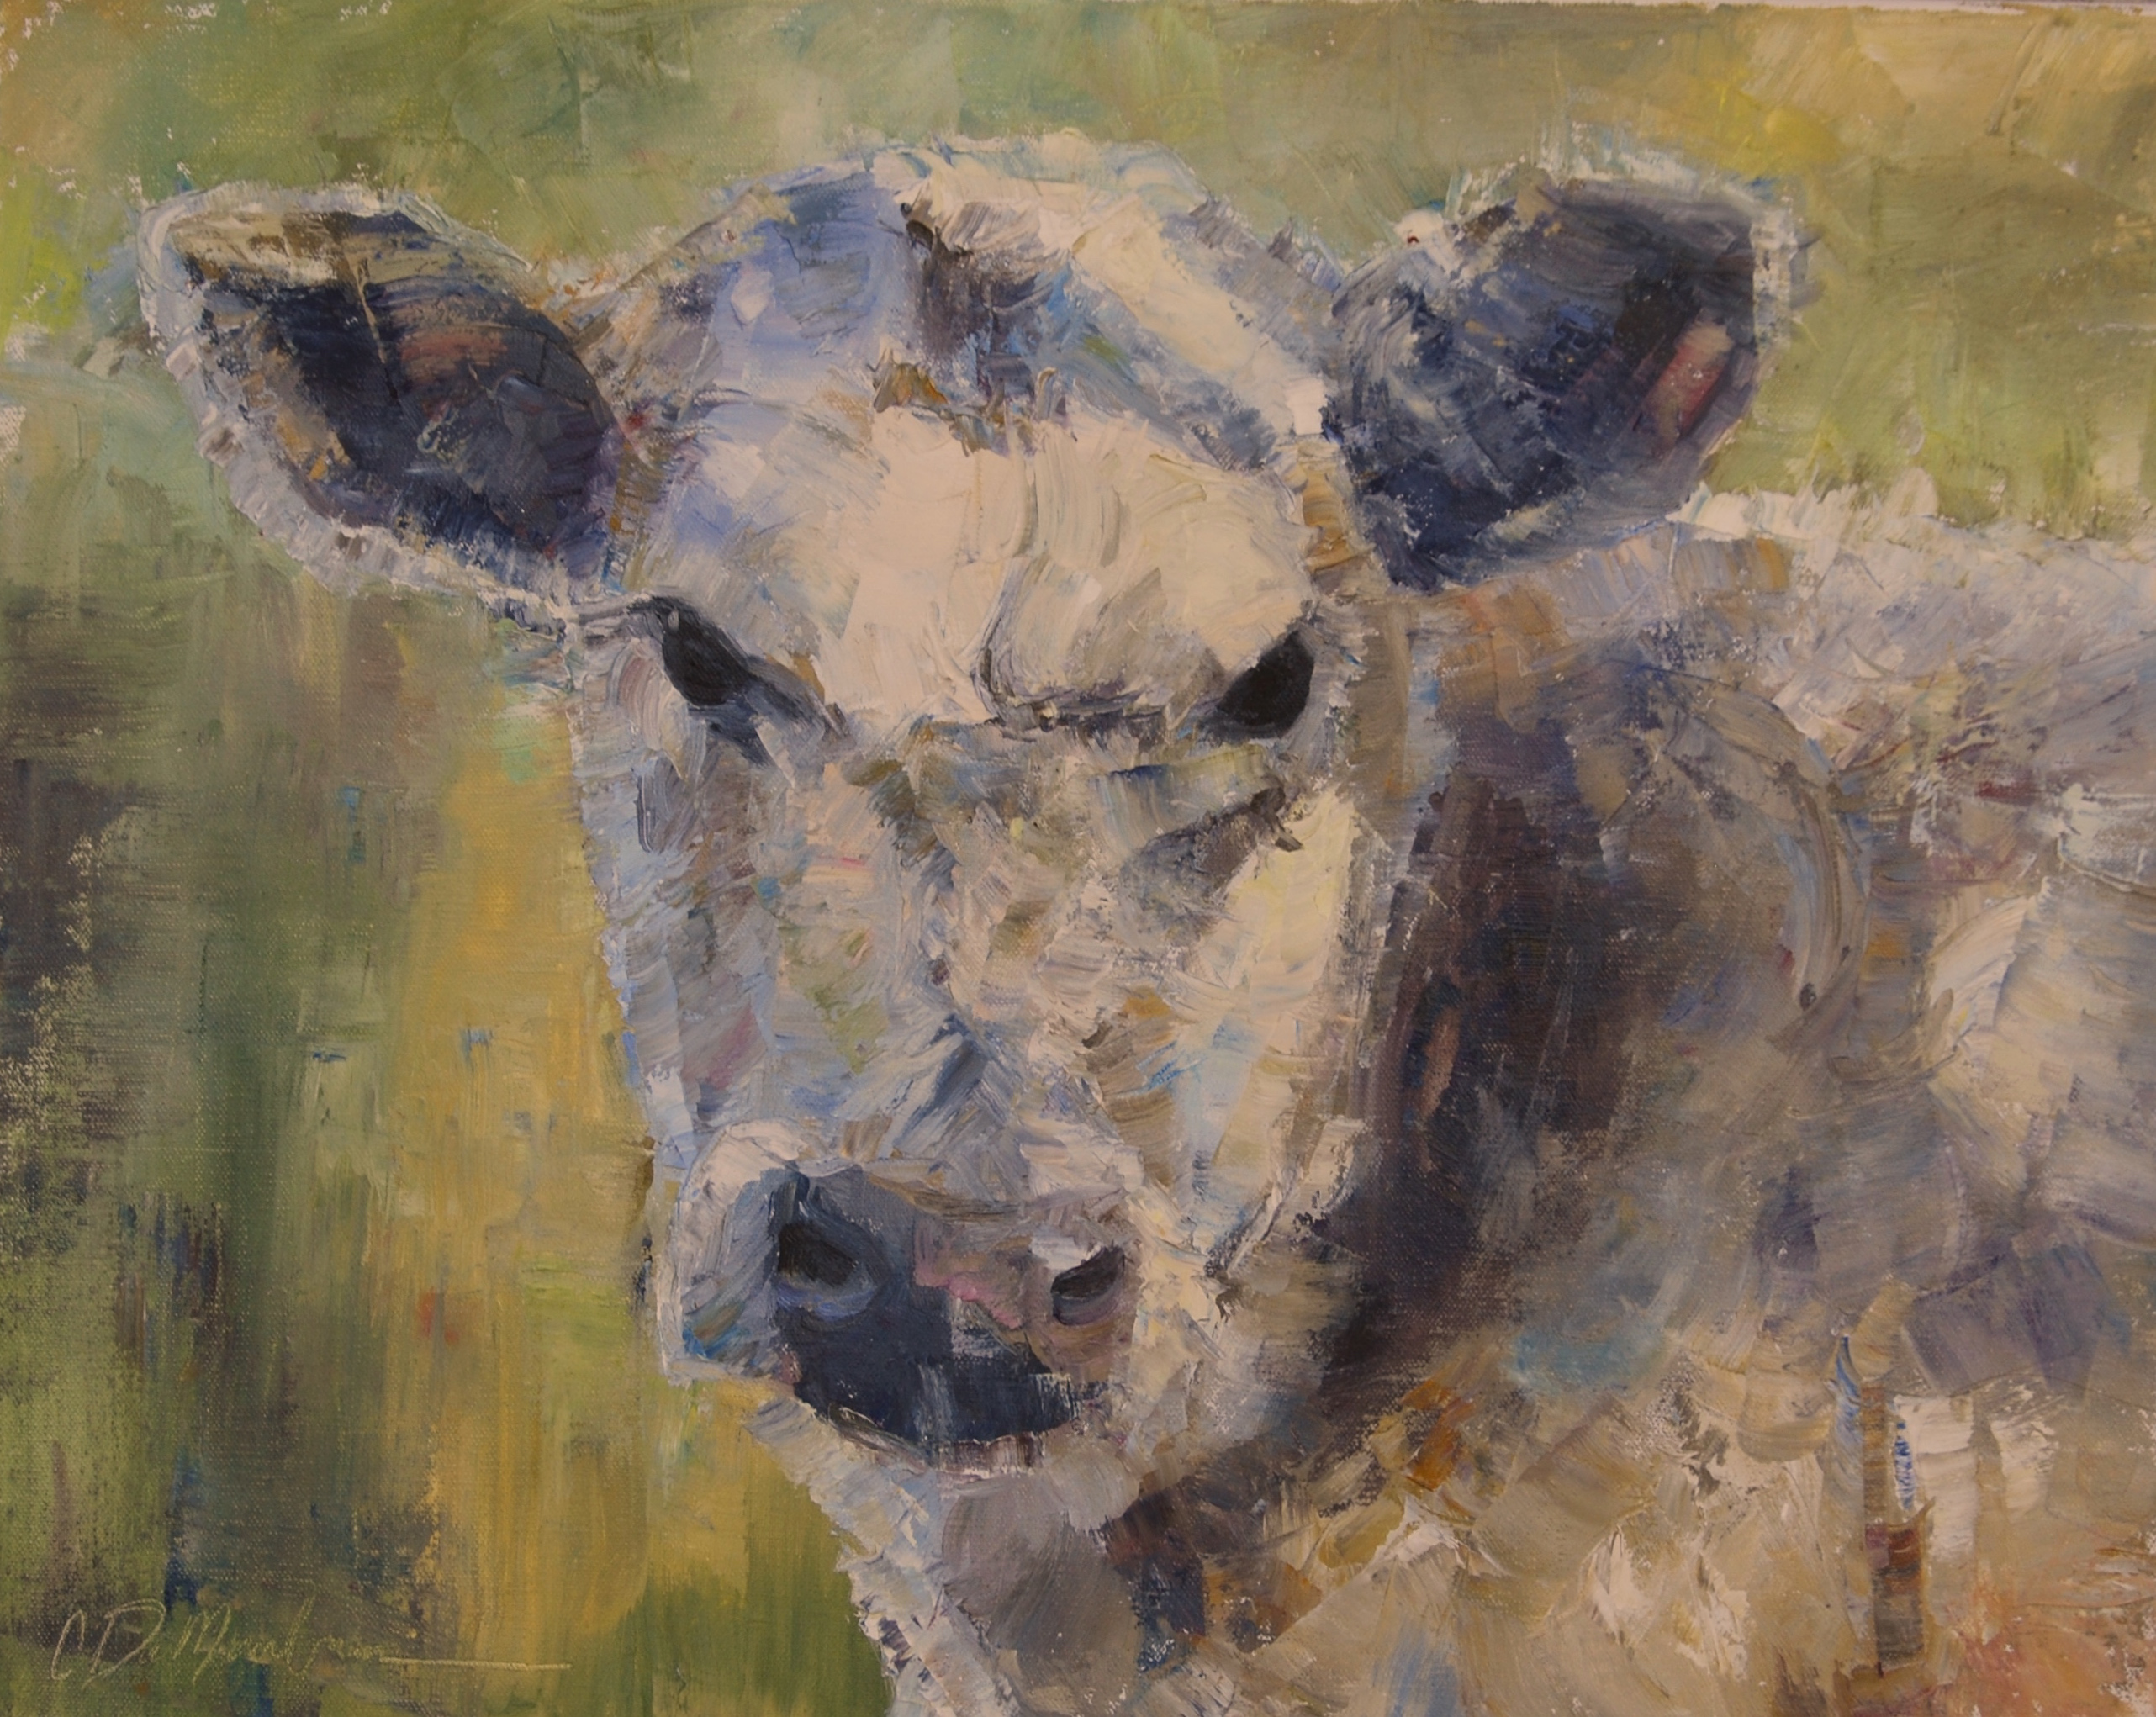 White Cow_ Palette knife